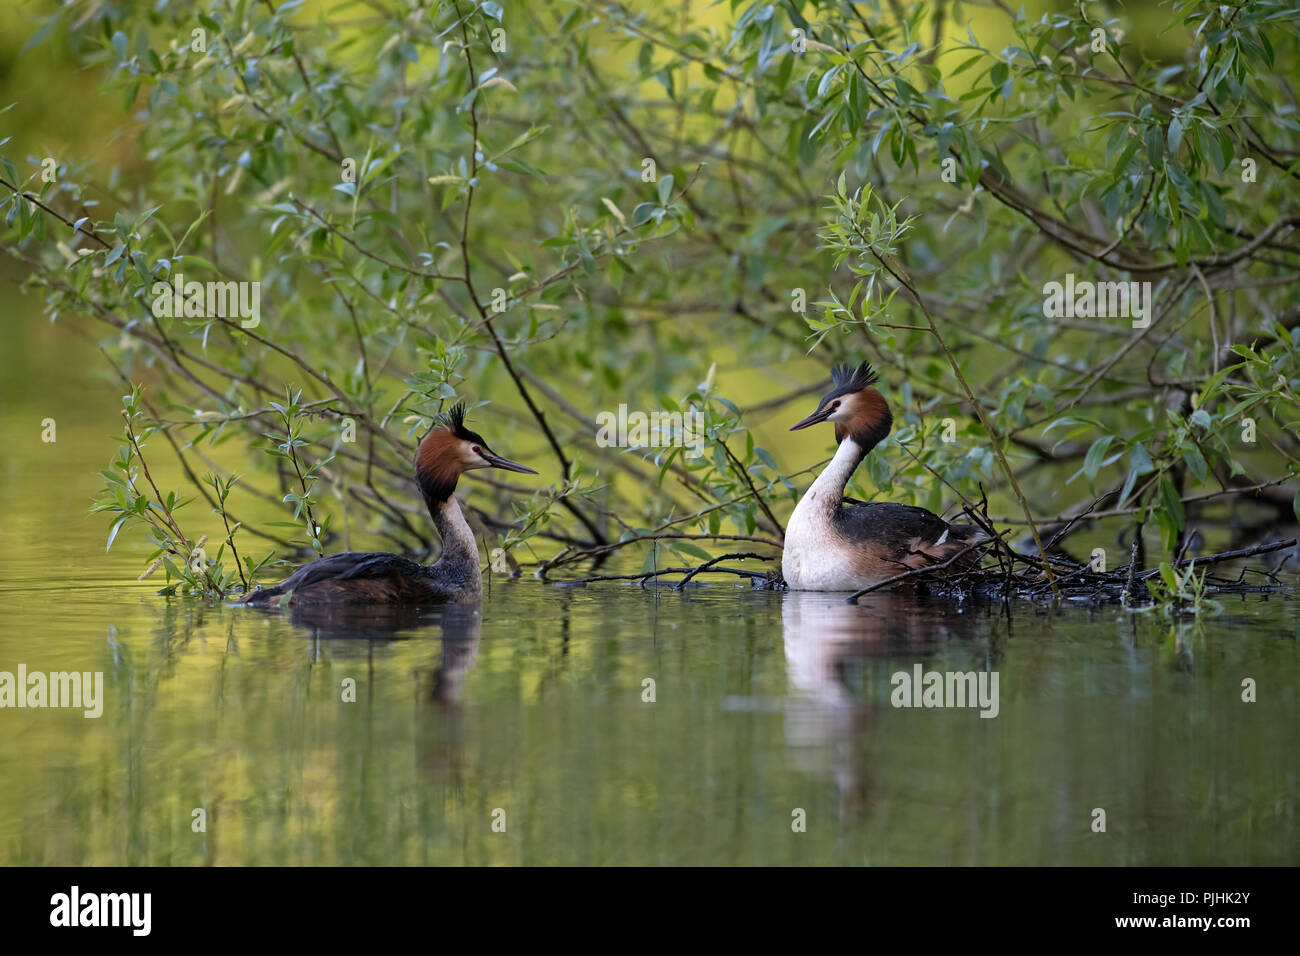 Great Crested Grebes-Podiceps cristatus display courtship. Uk - Stock Image